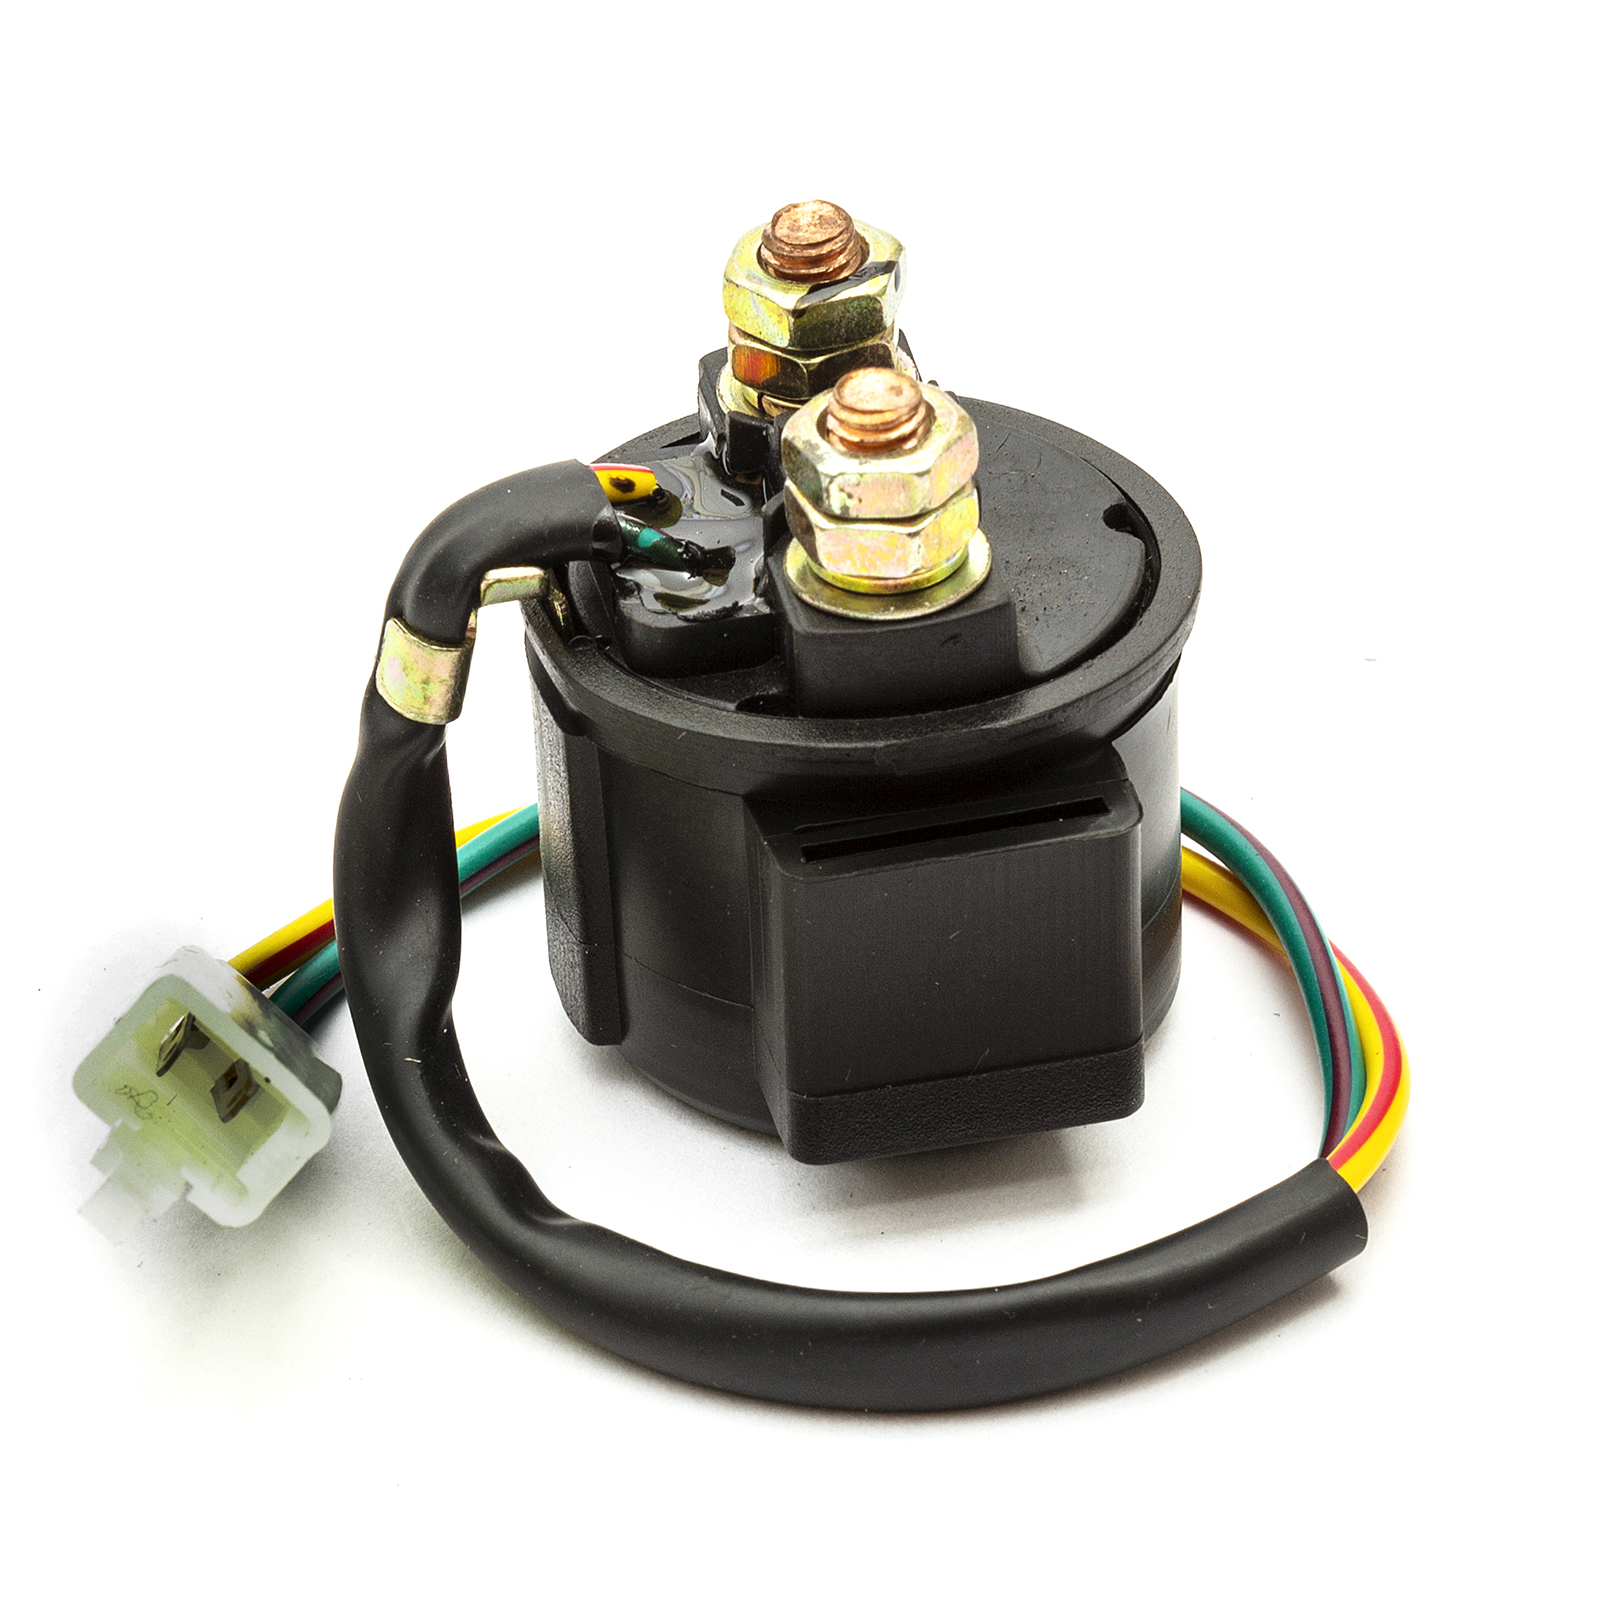 12v Starter Solenoid Relay For Atv Go Kart Pit Dirt Bike Quad 90cc 110cc 125cc Quality And Quantity Assured Atv Parts & Accessories Atv,rv,boat & Other Vehicle